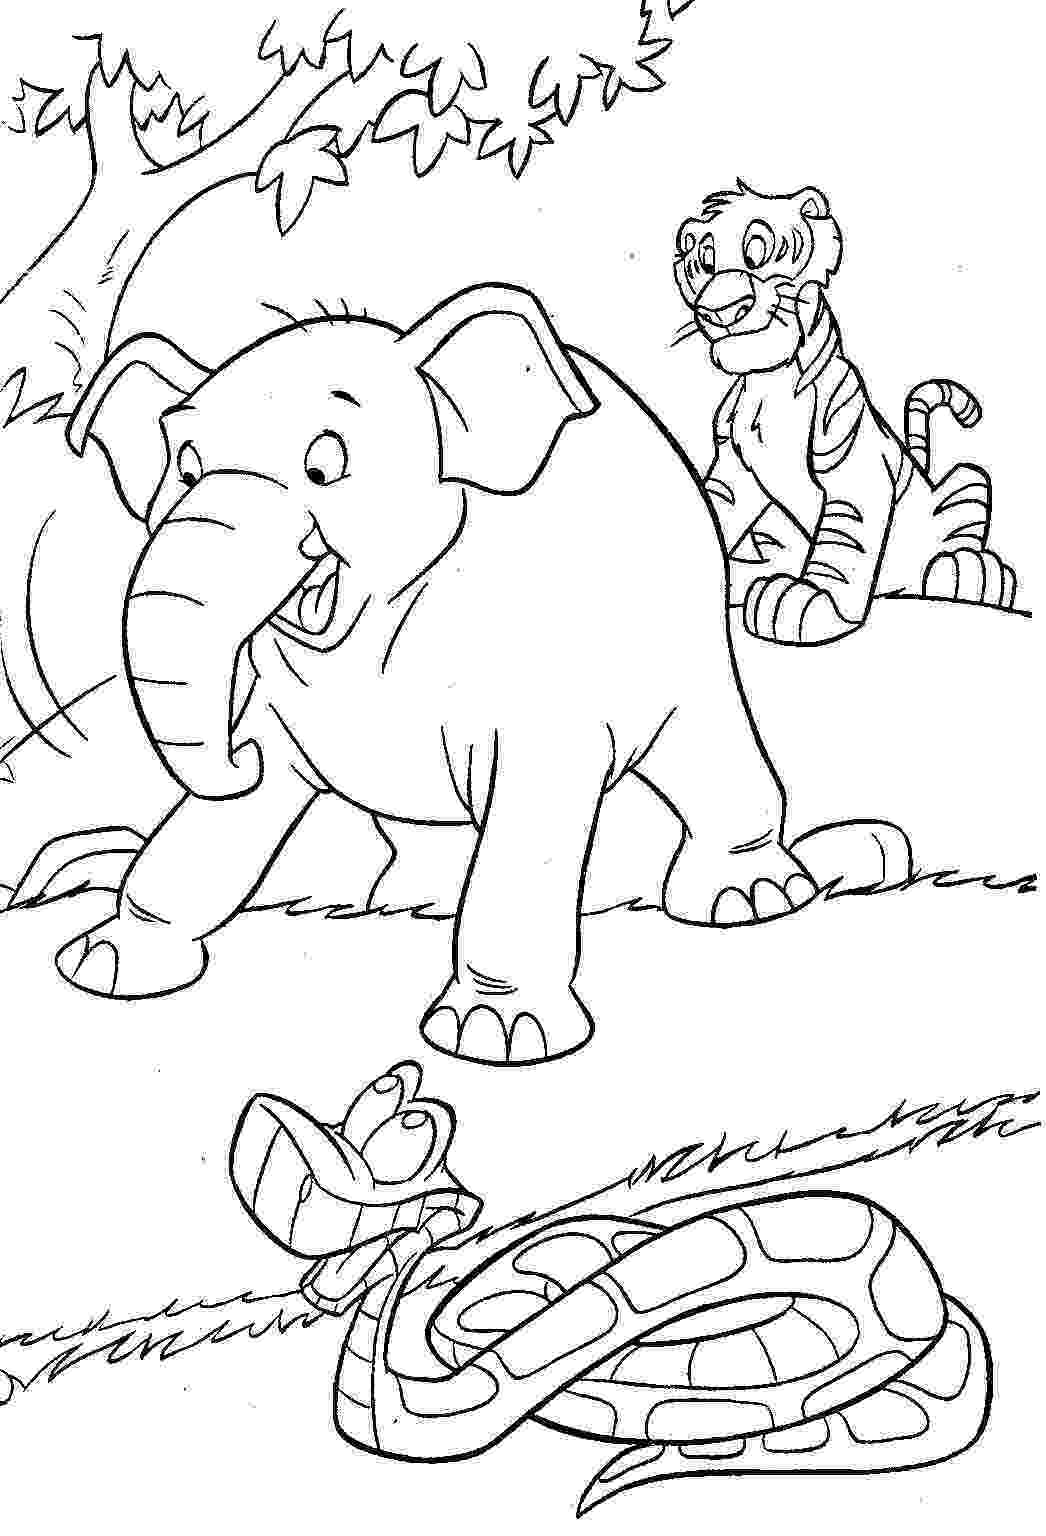 african animals coloring pages cheetah coloring page free printable coloring pages african pages coloring animals